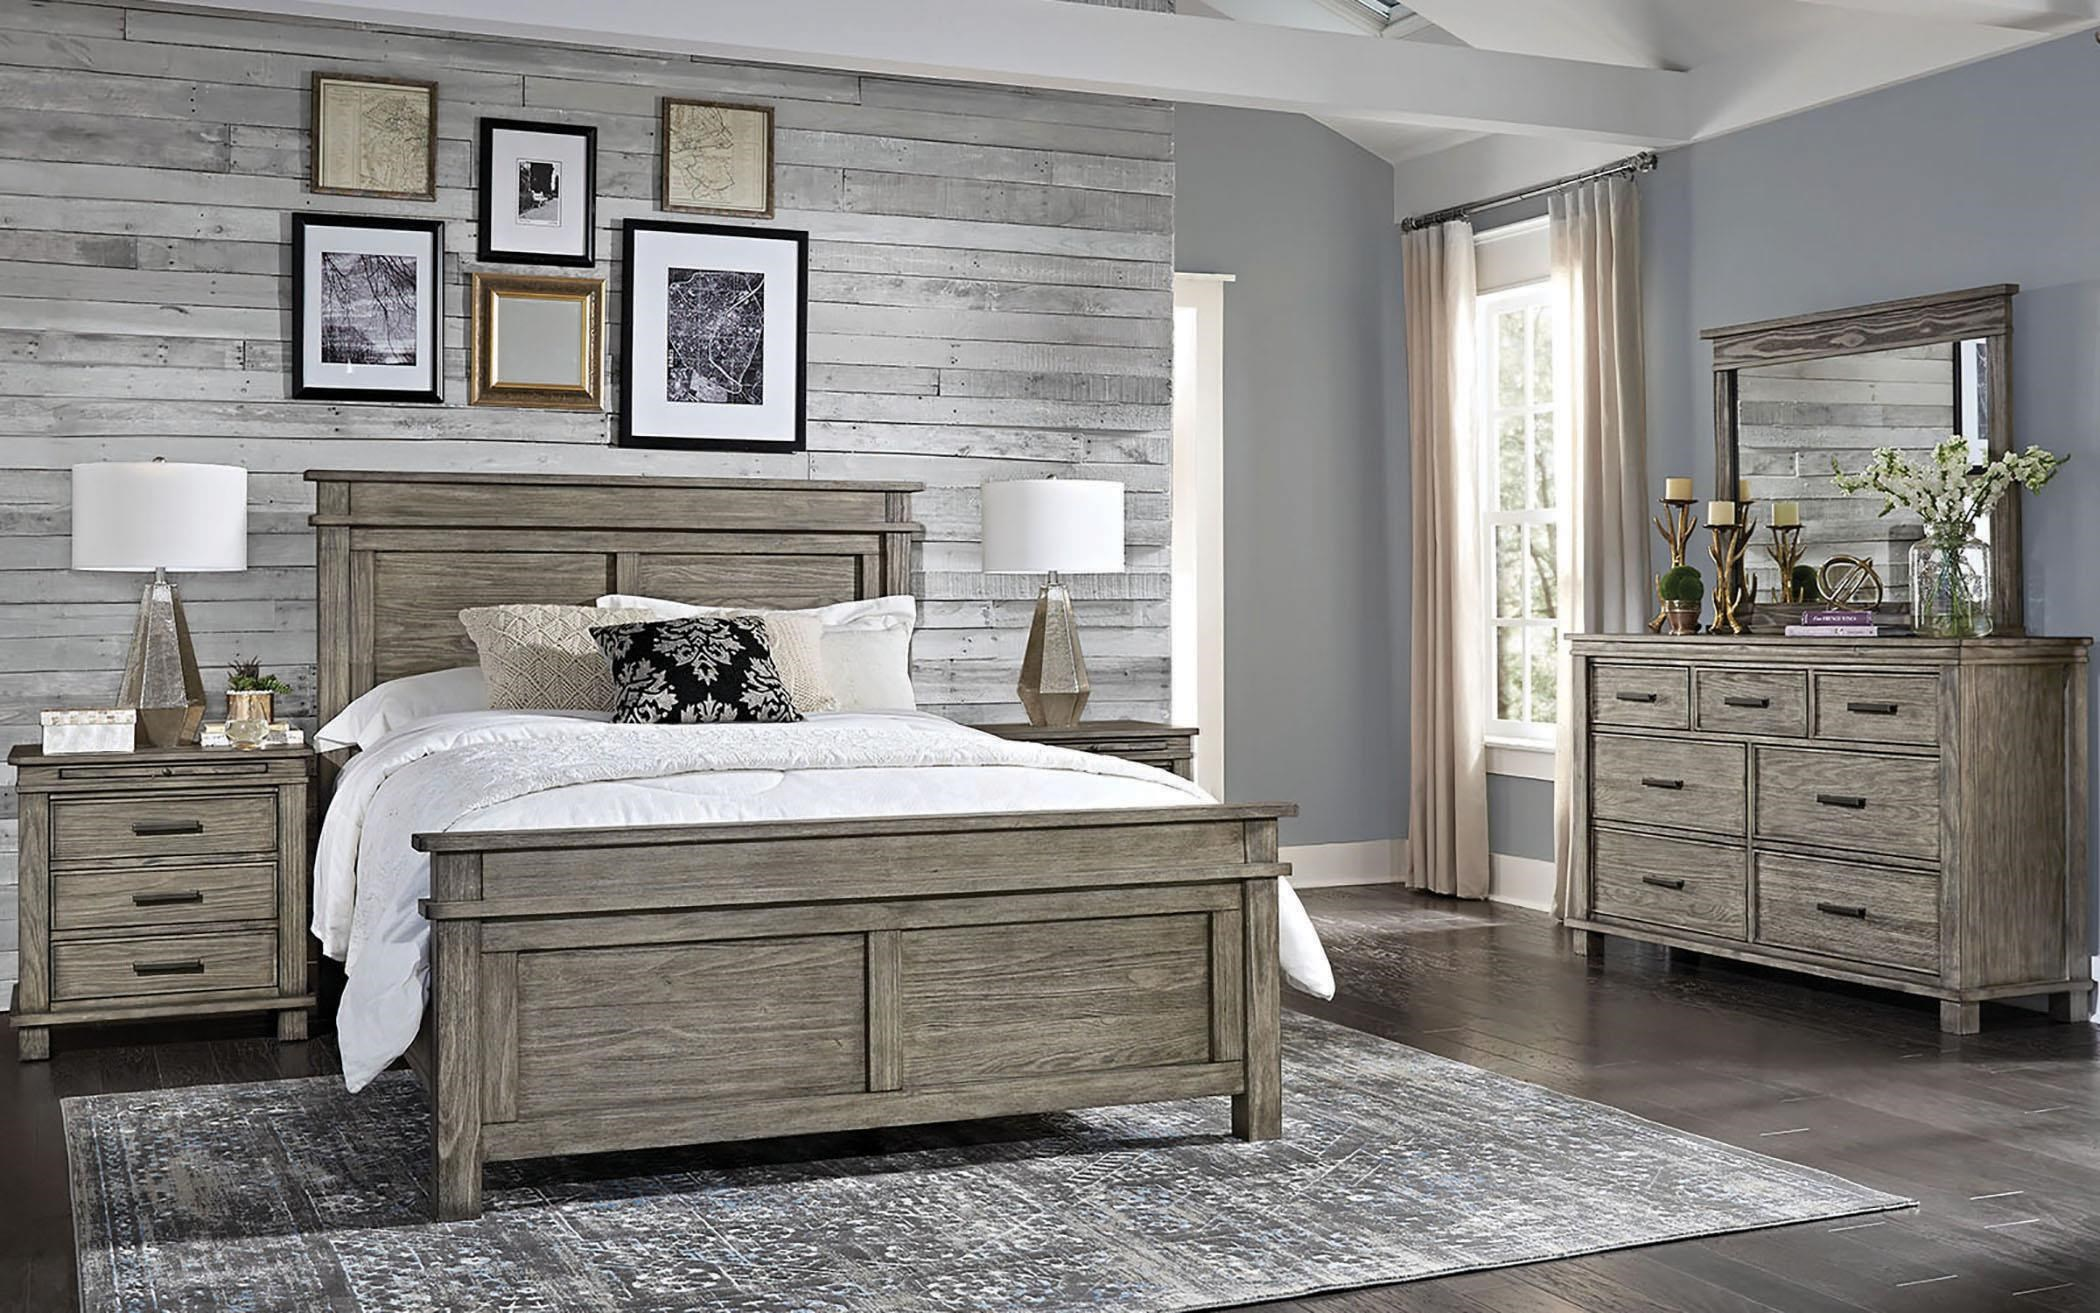 Glacier Point Queen Bed Set, Night Stand, Dresser, Mirror by AAmerica at Johnny Janosik